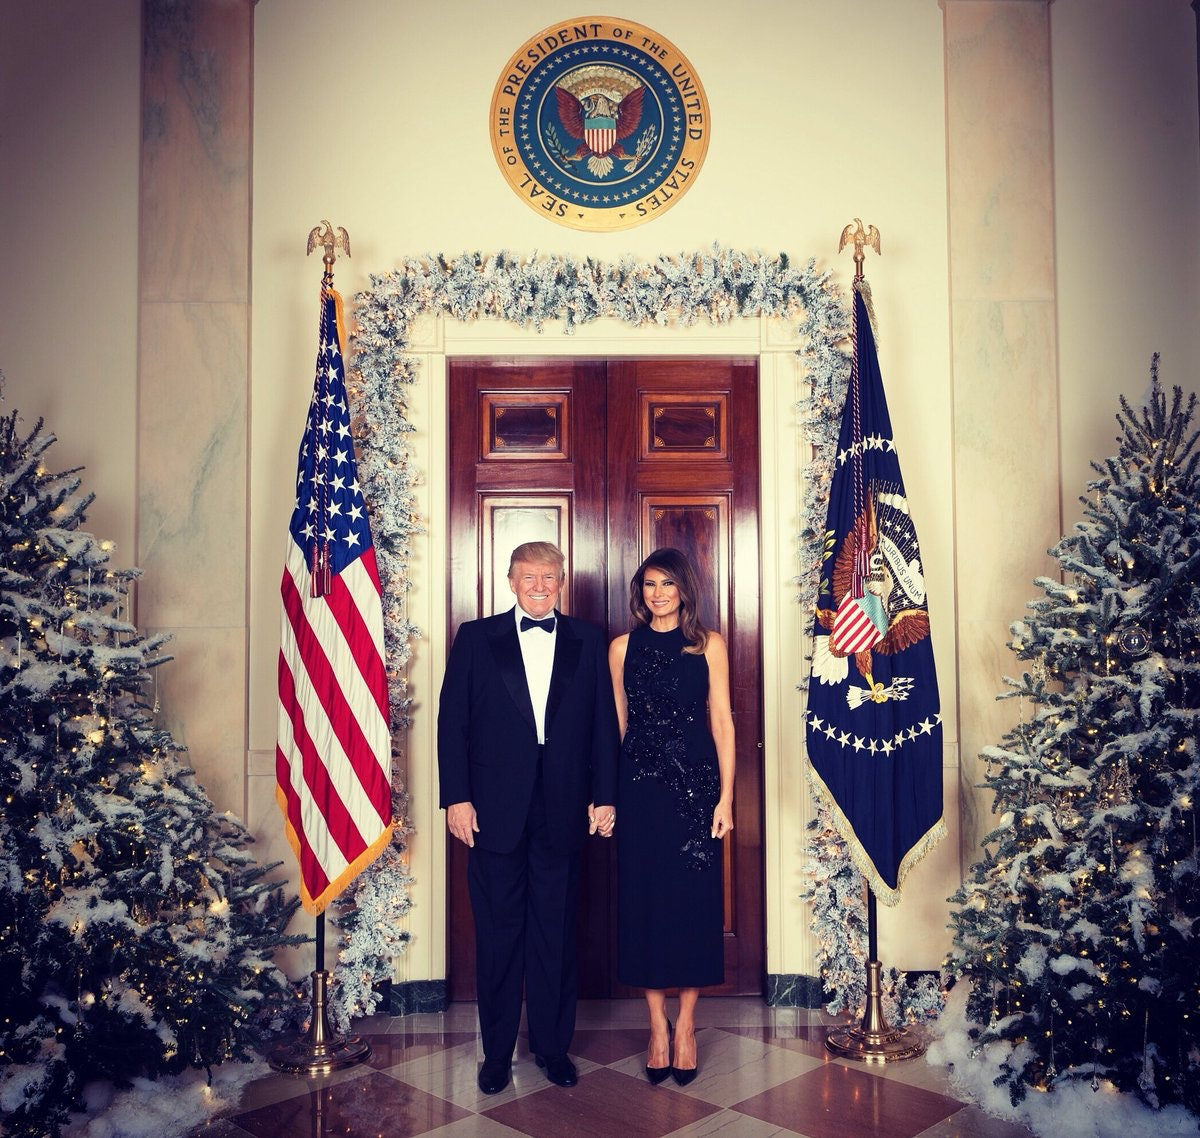 The White House Releases the Christmas Portrait of Donald and Melania Trump